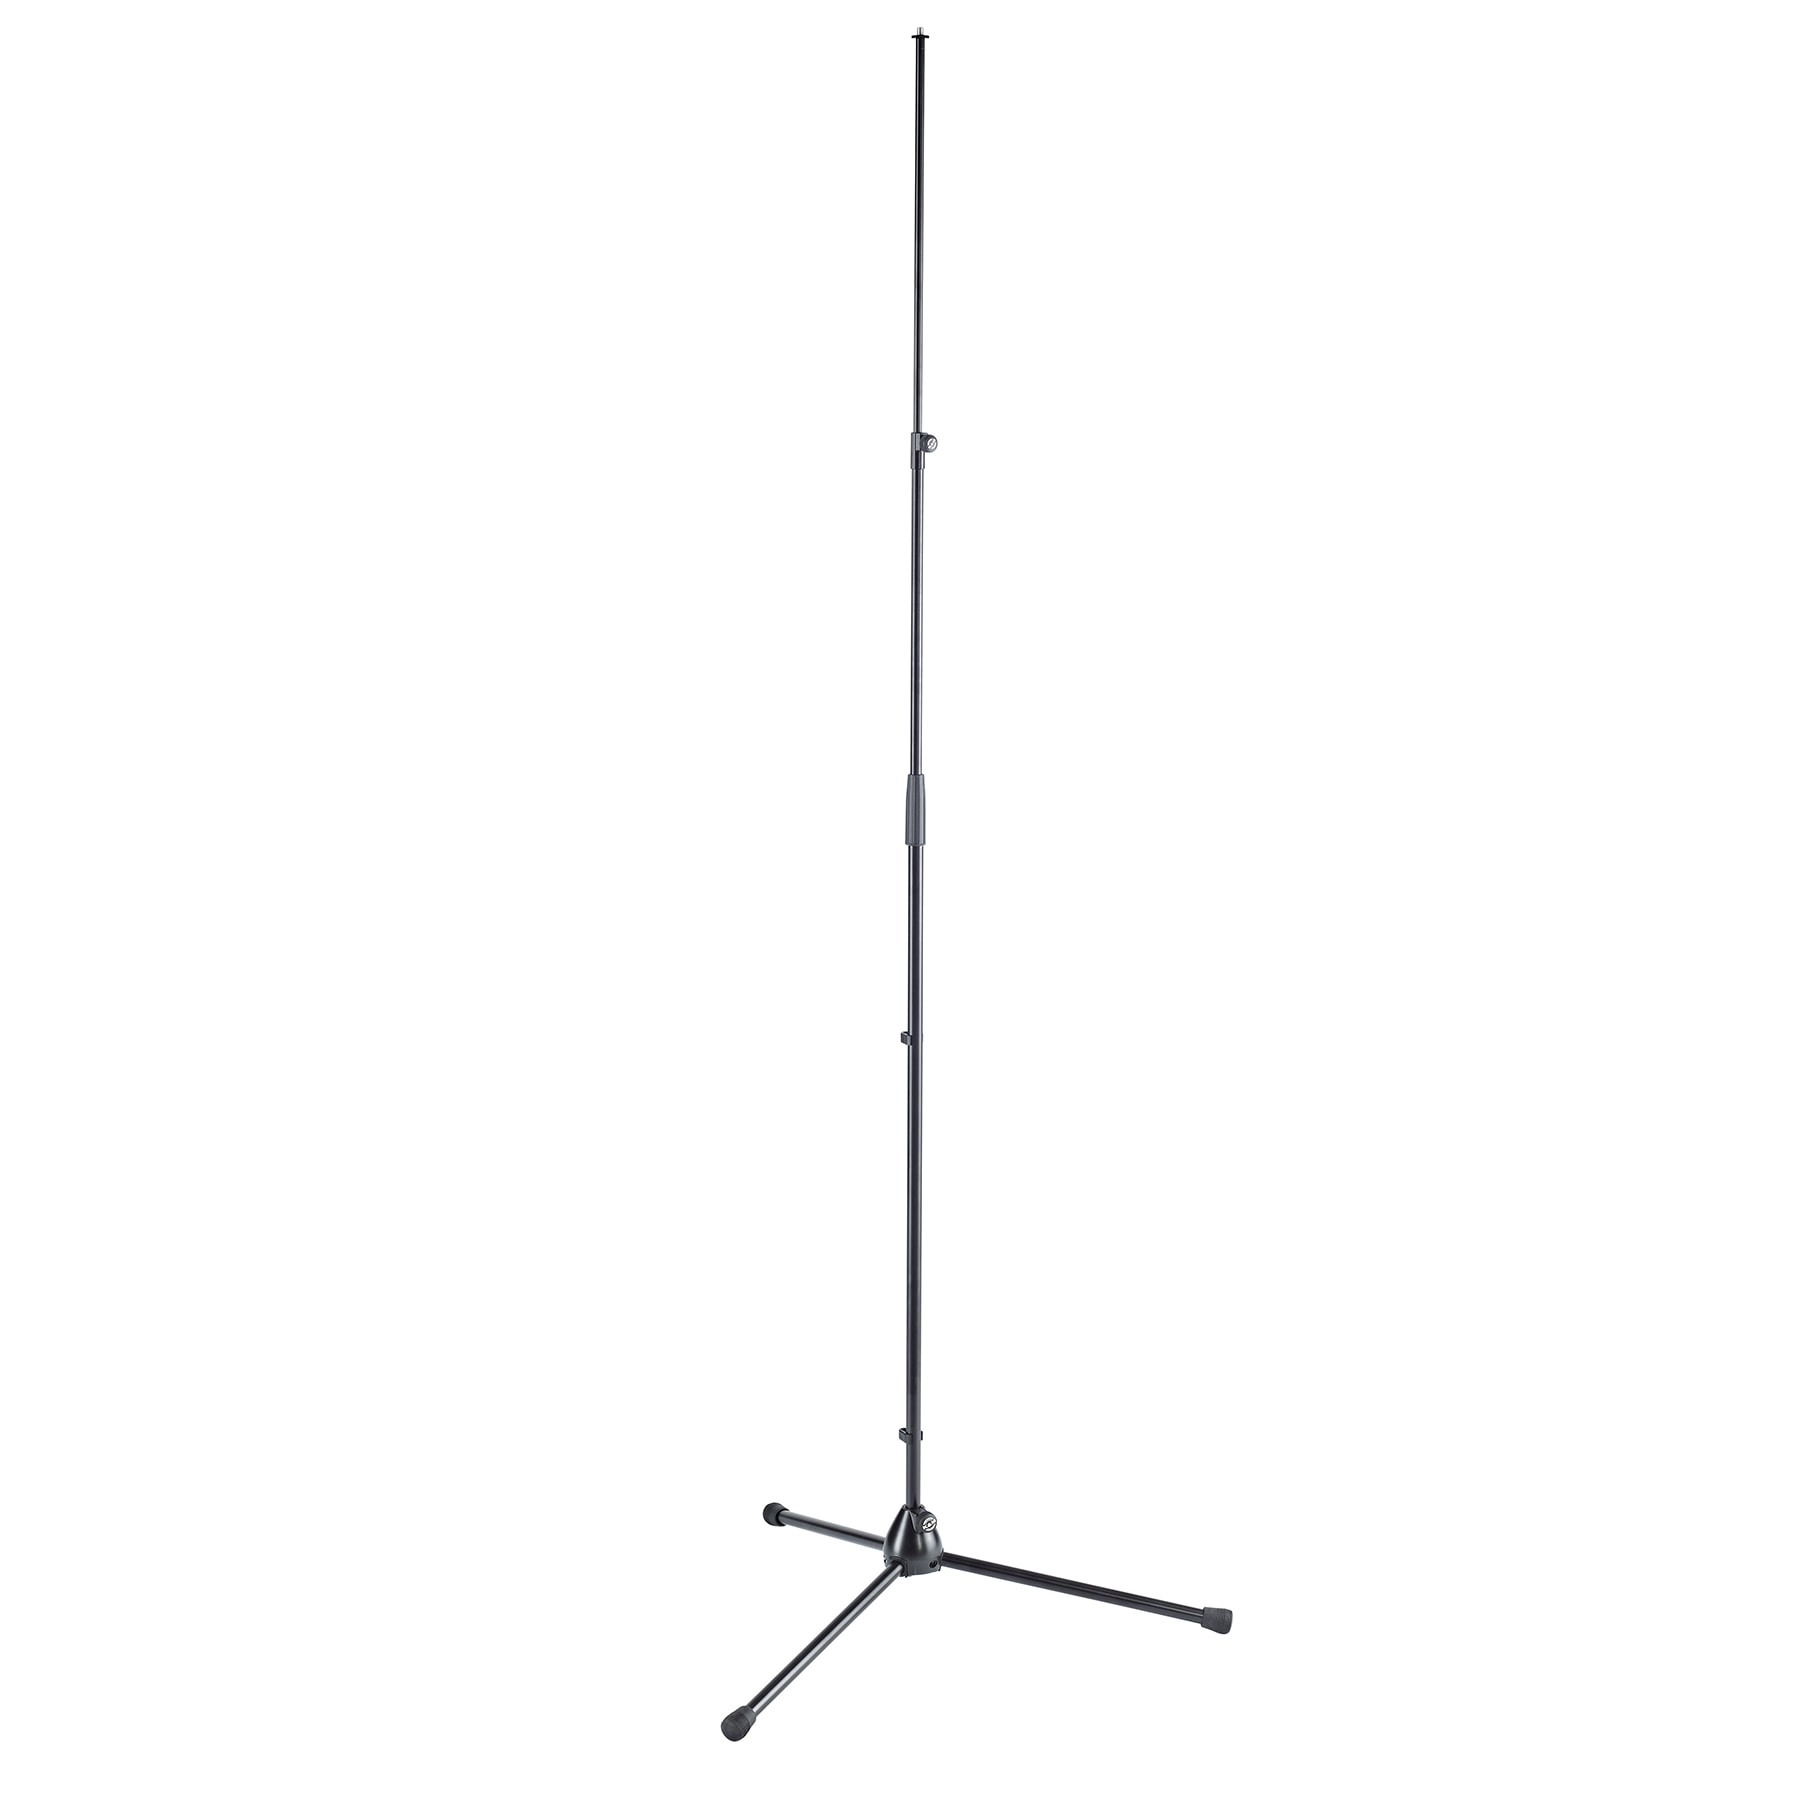 KM20150 - Microphone stand XL